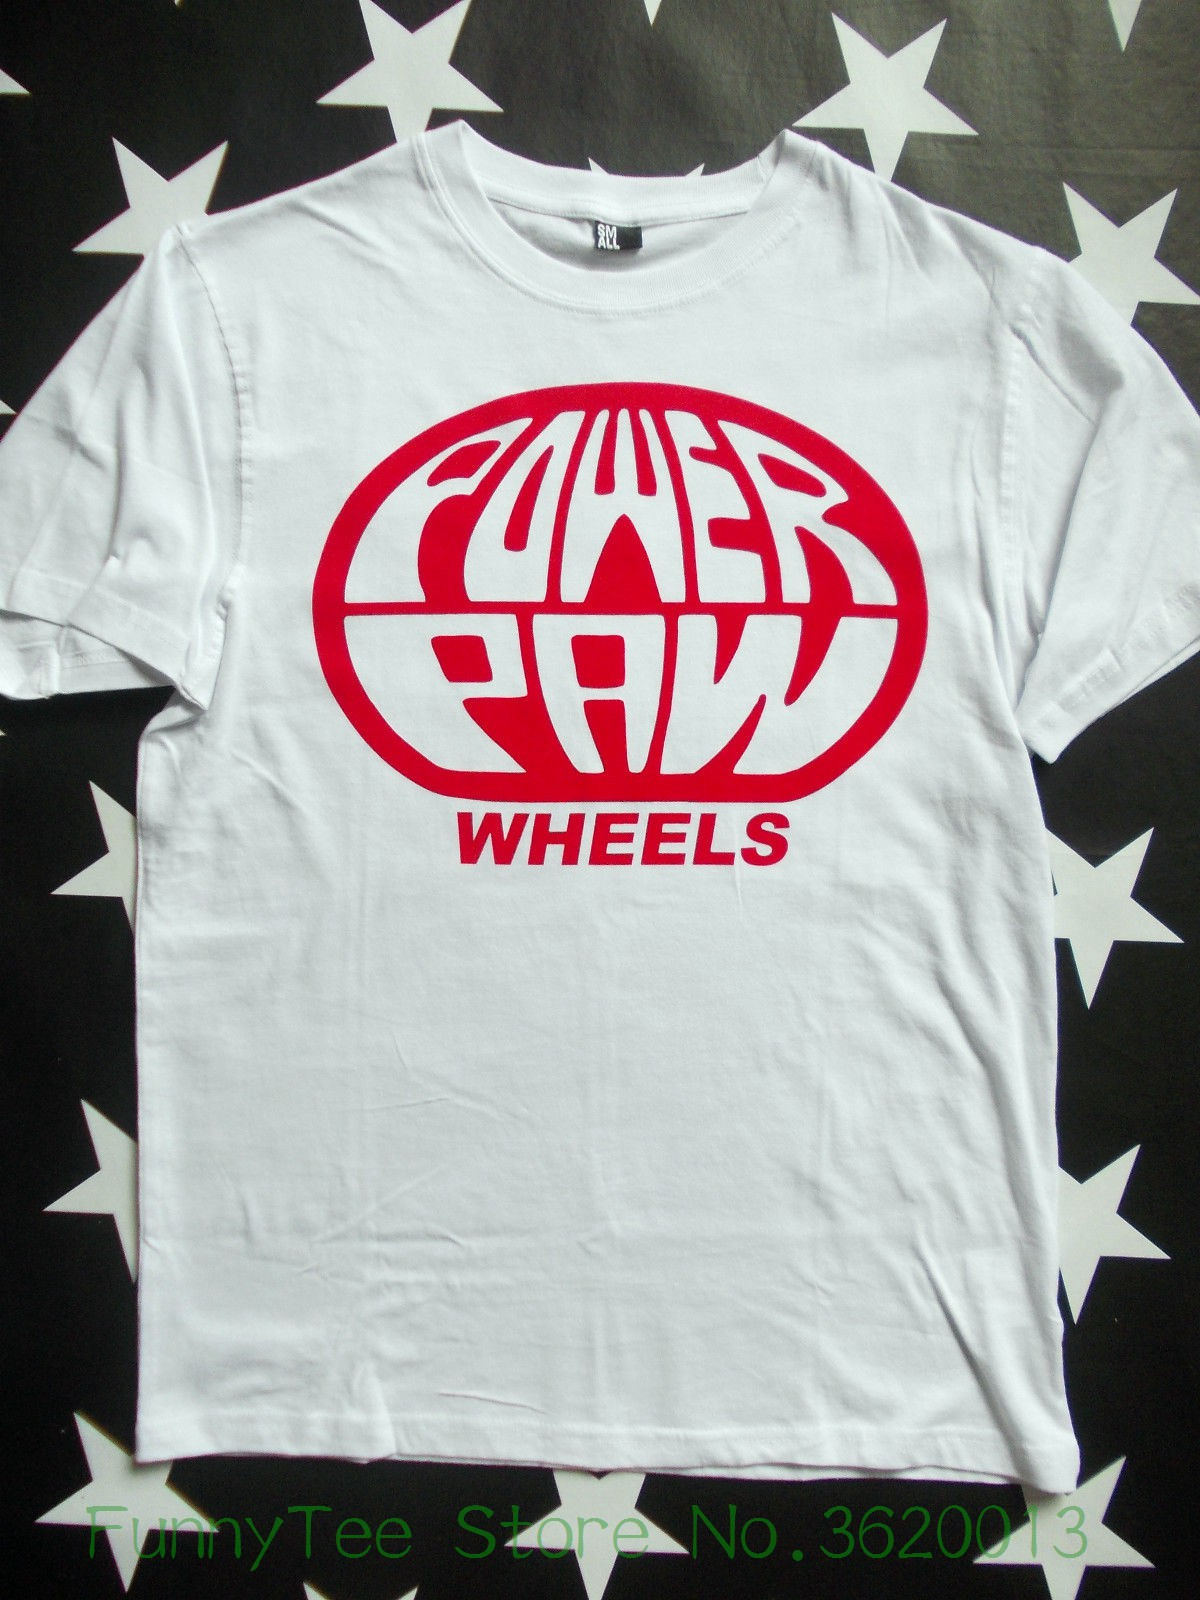 Womens Tee Power Paw Wheels 70s Skateboard Logo T-shirt Size S - 2xl Old Skool skateboarder 2018 Summer Harajuku Brand